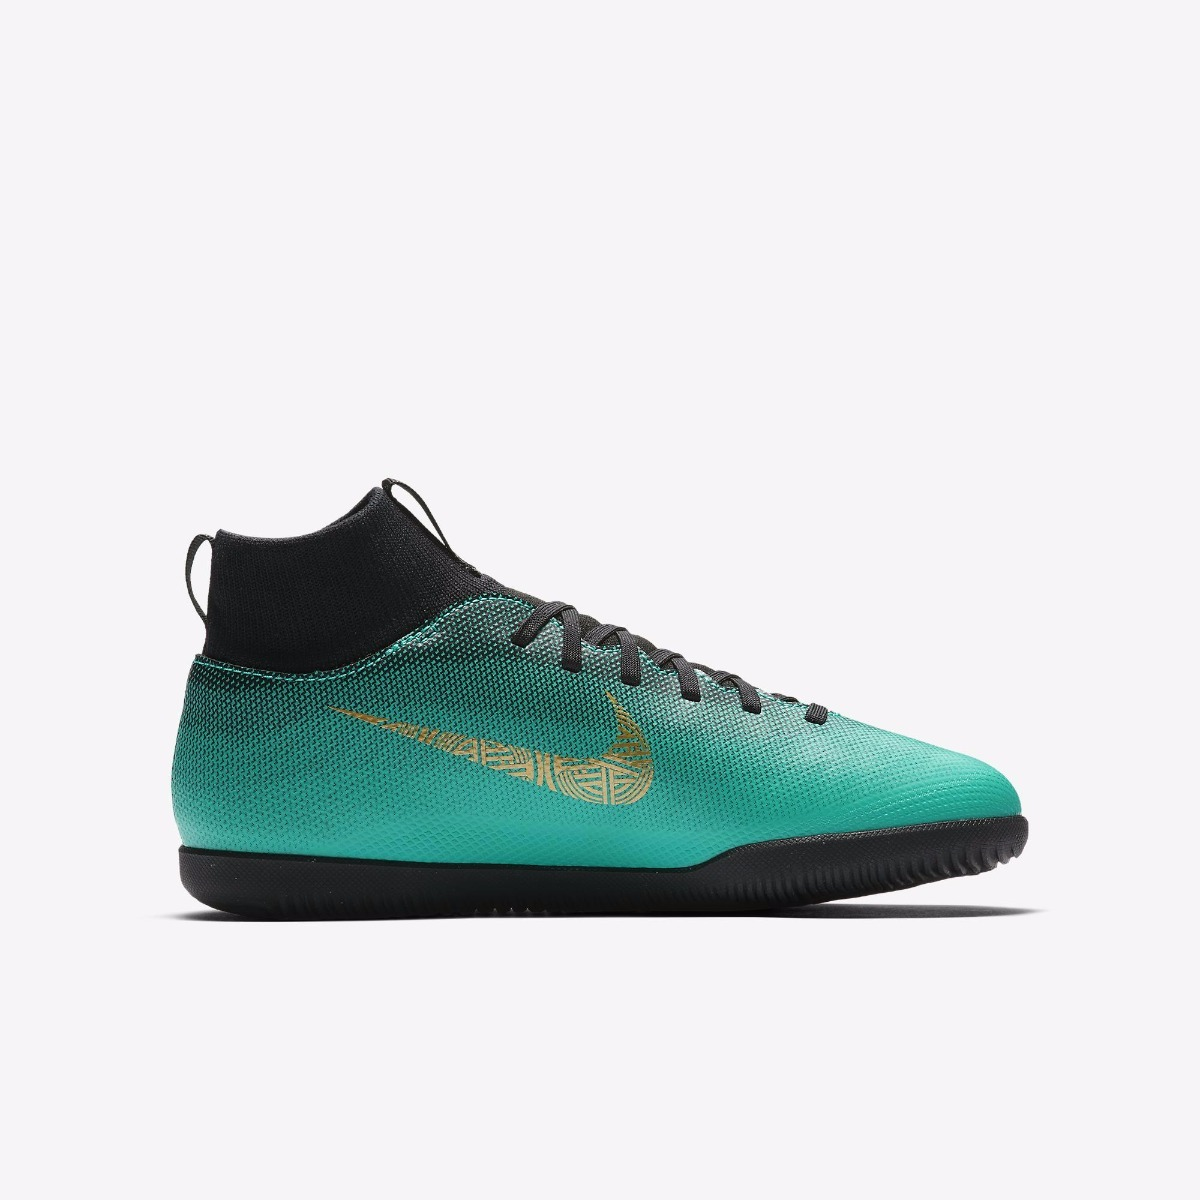 9d1ae84f300fe chuteira infantil nike mercurial superfly 6 club cr7 ic + nf. Carregando  zoom.